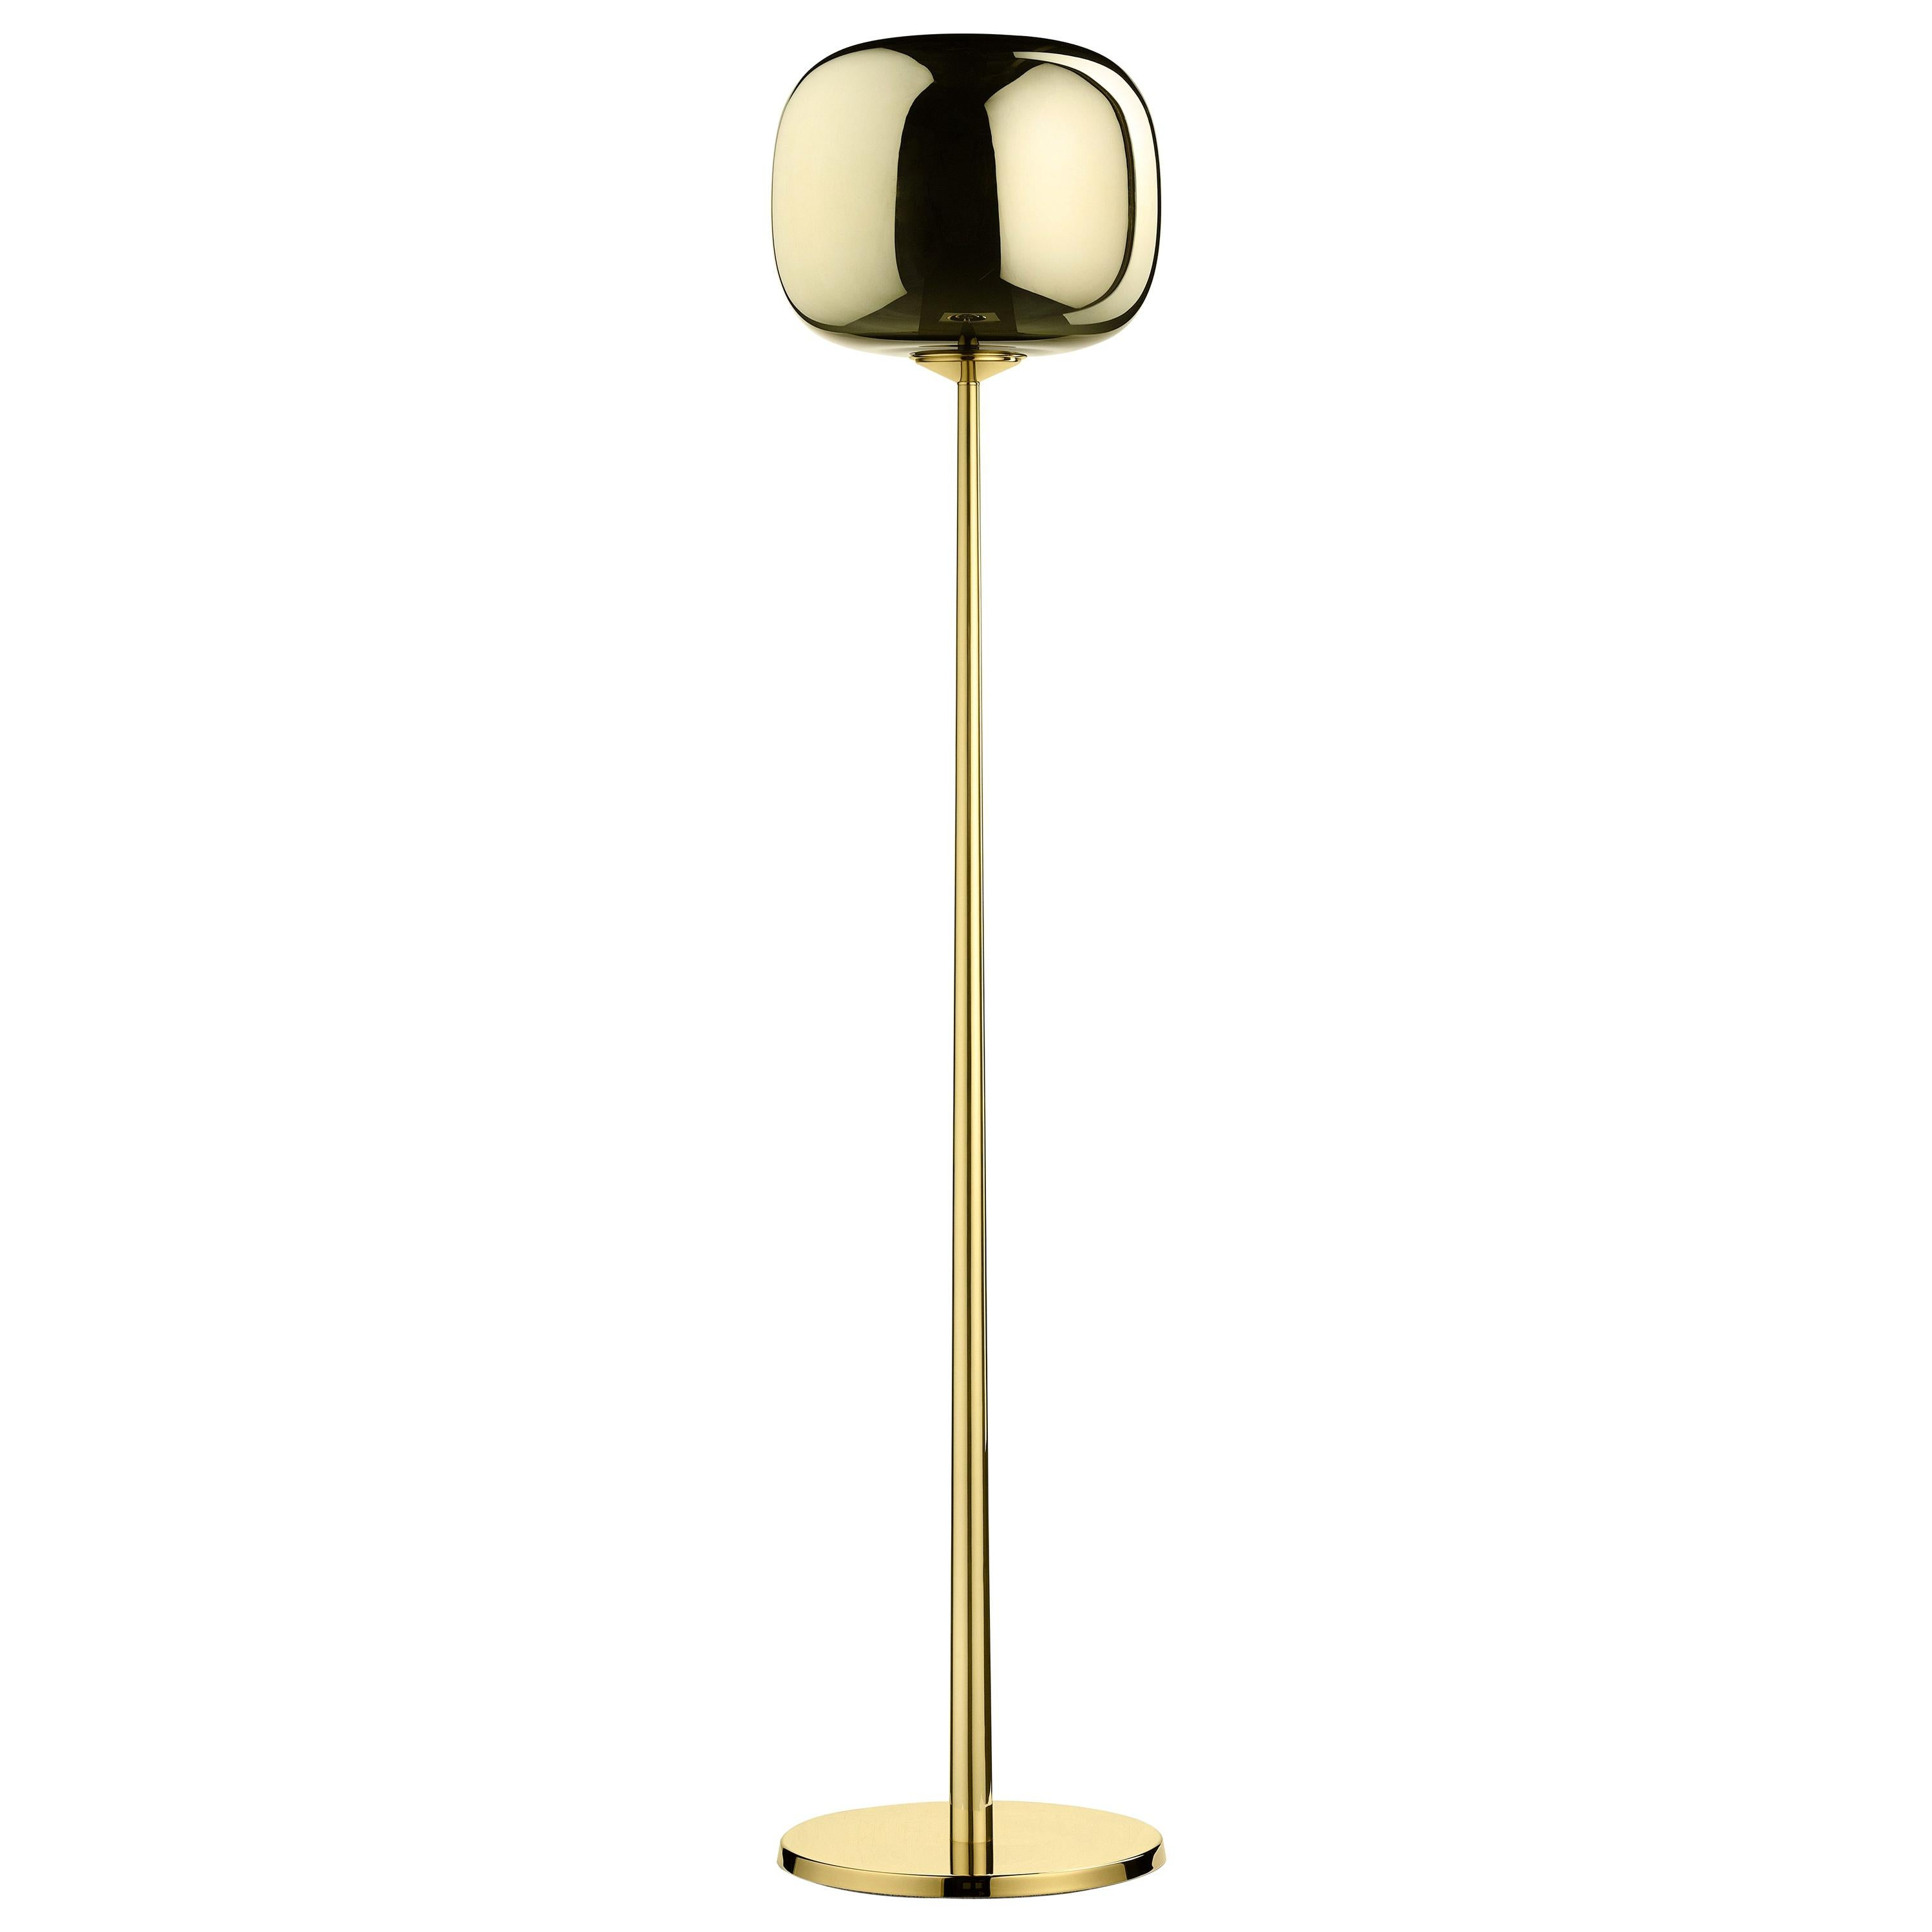 Ghidini 1961 Tall Dusk Dawn Floor Lamp in Brass and Metallic Glass by Branch